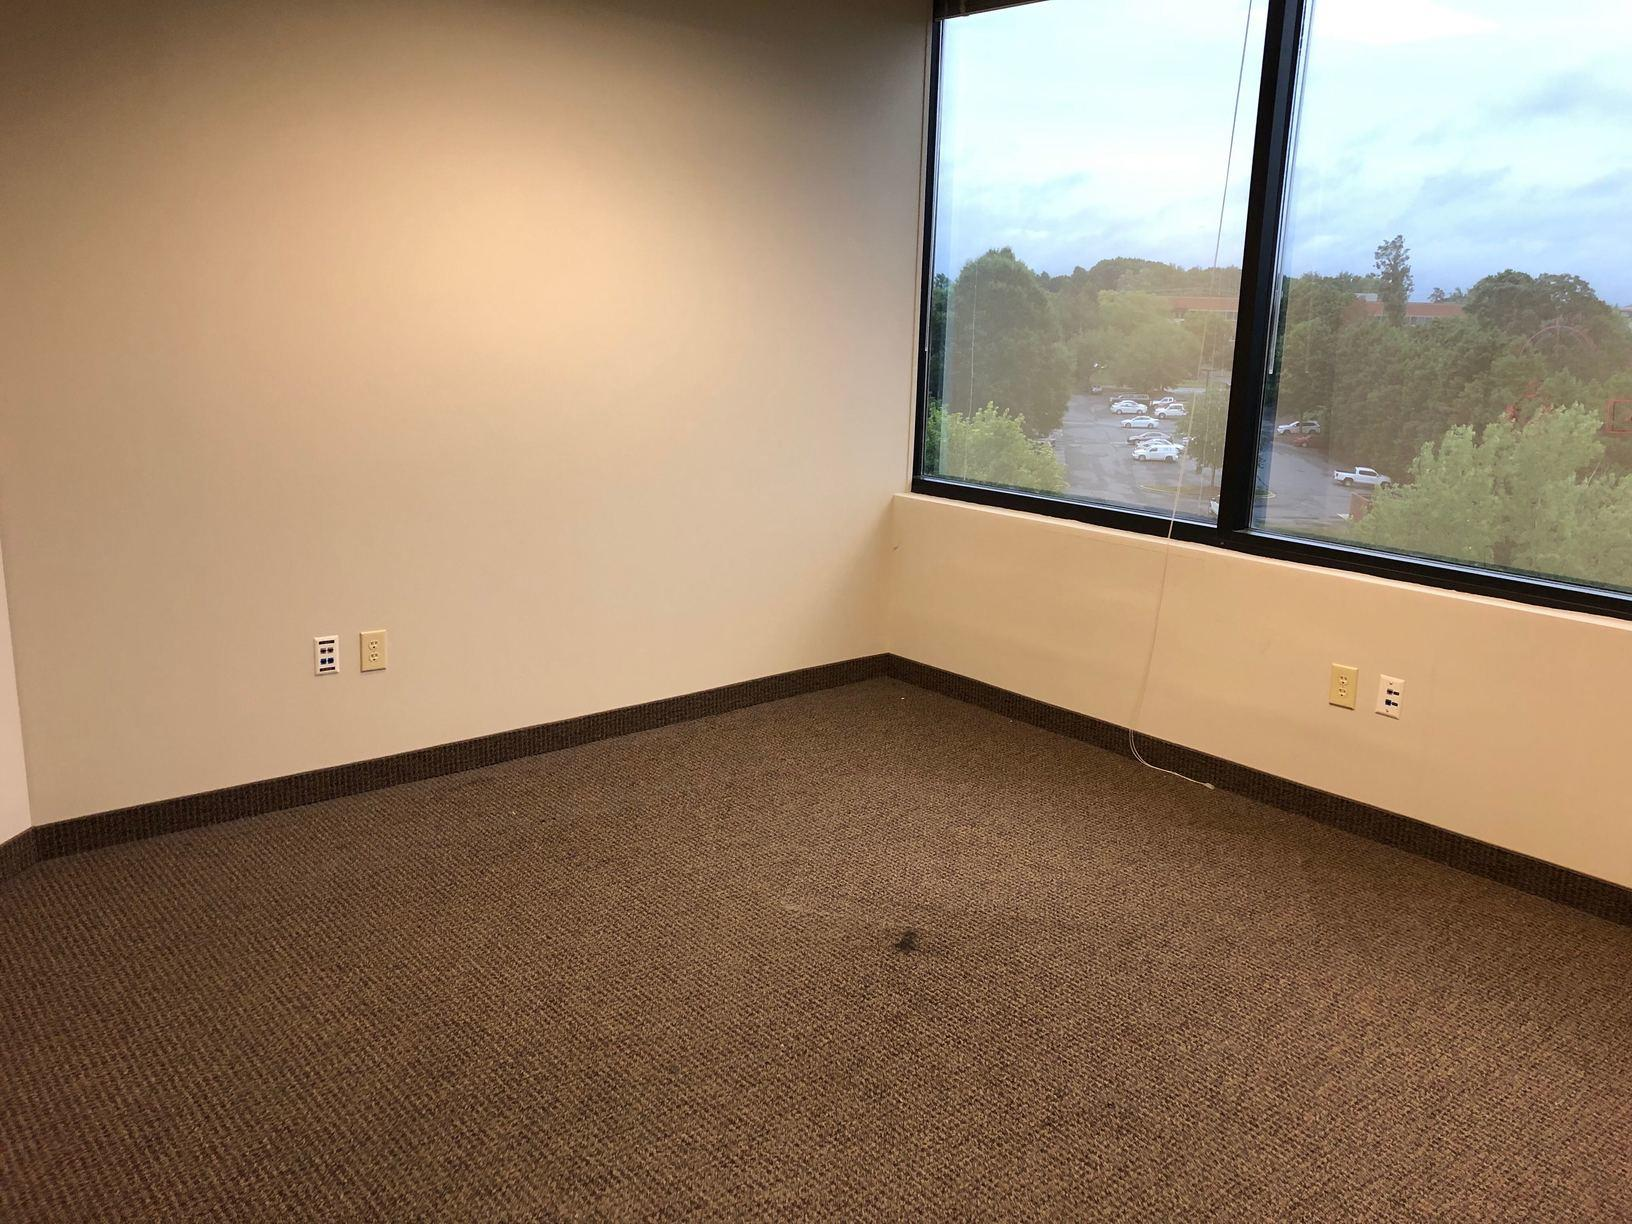 Office 2 - After